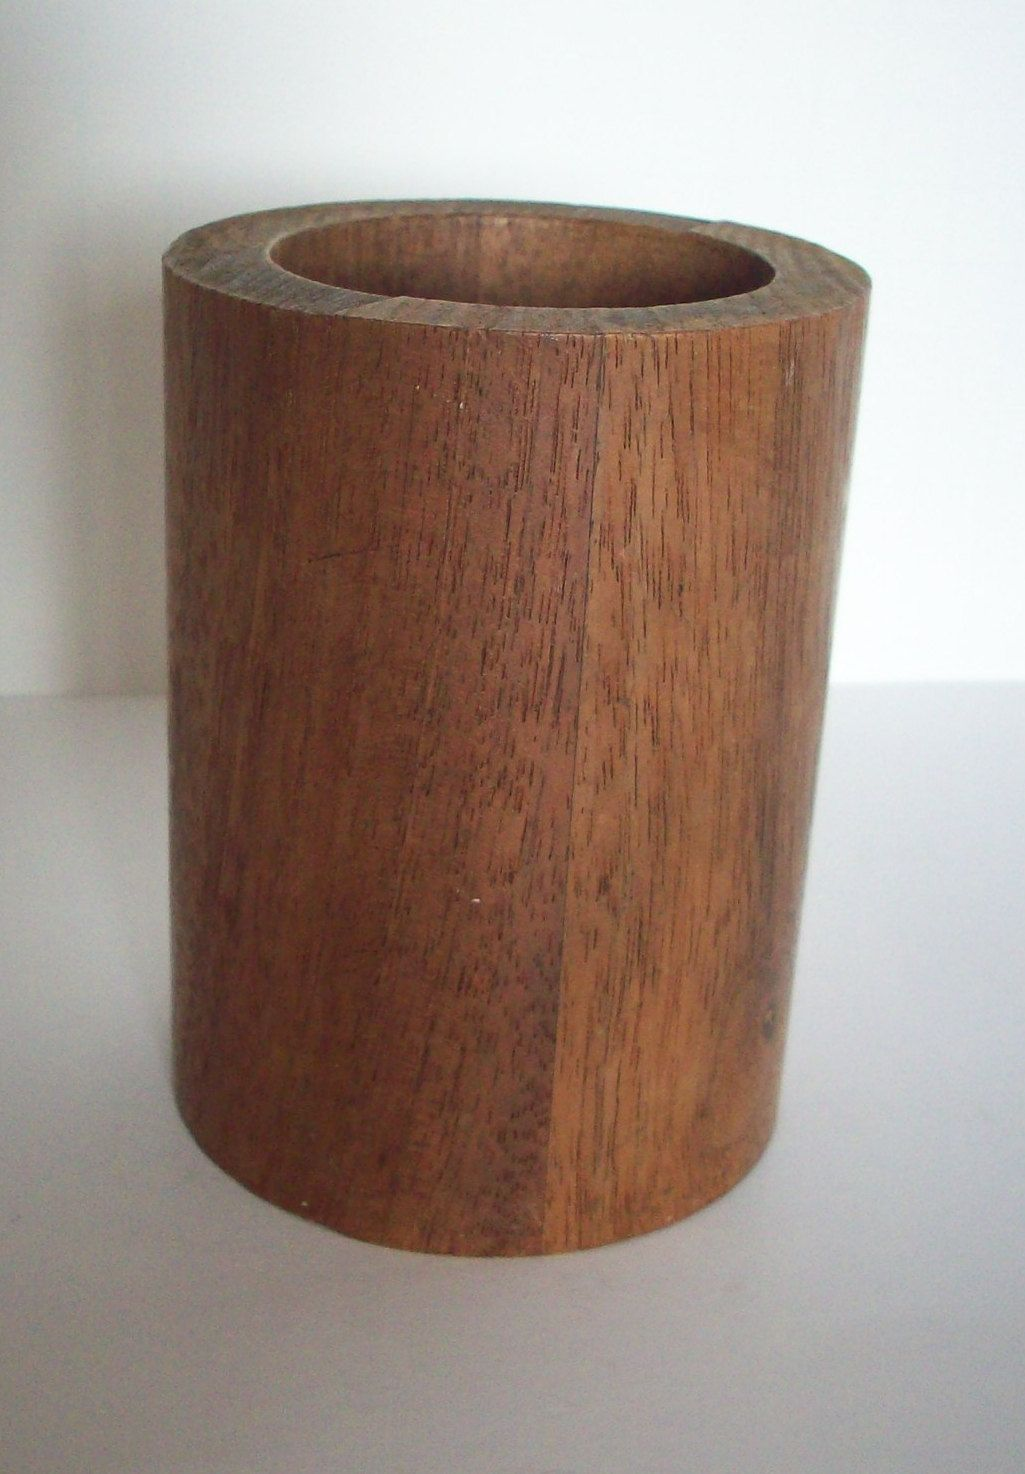 Pen Cup Holder Vintage Pencil Holder Wood Pencil Pen Cup Mahogany Pencil